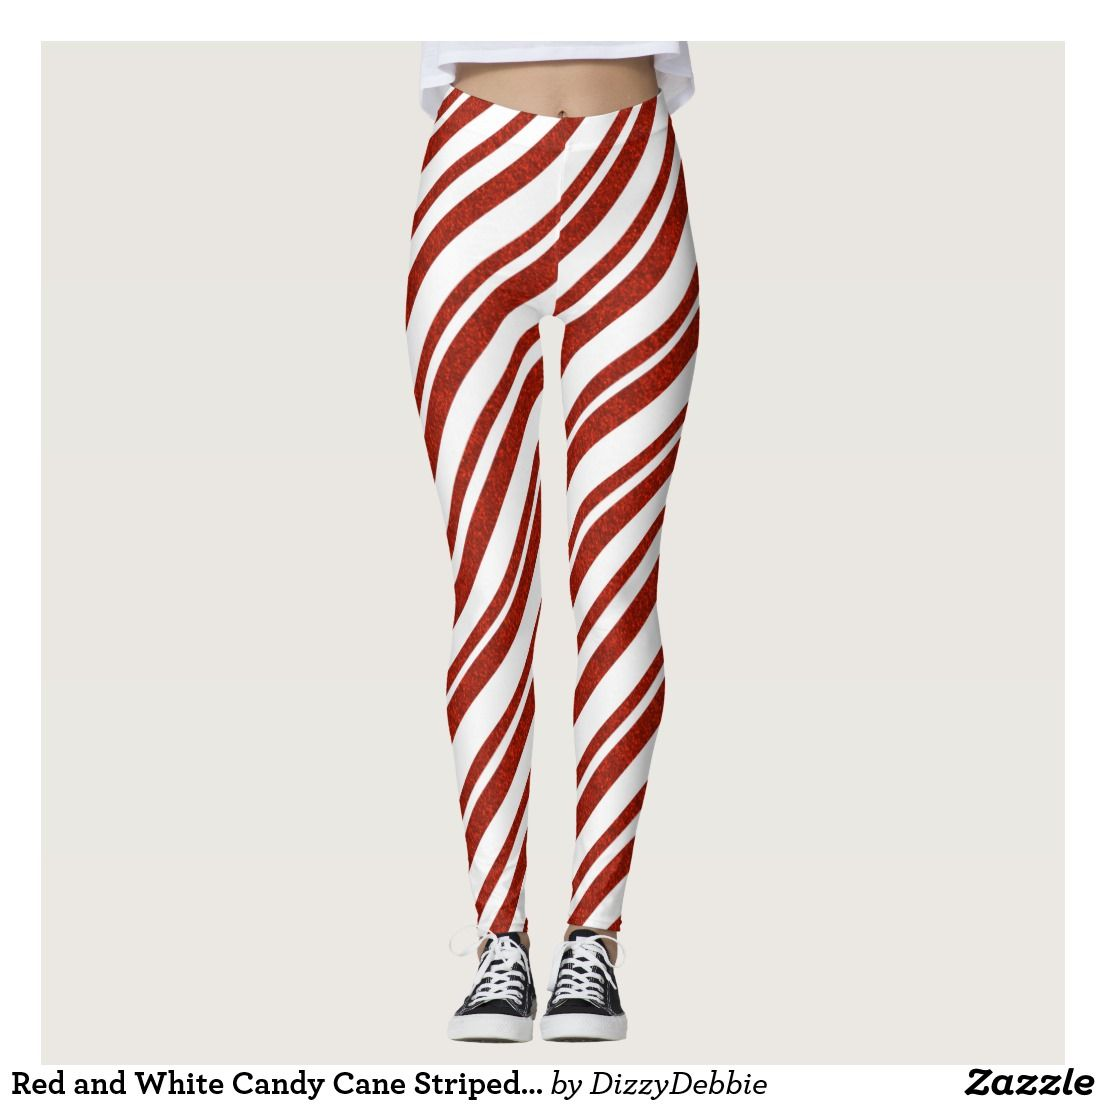 d332b47c5cde9 Red and White Candy Cane Striped Leggings   Zazzle.com   Women's ...